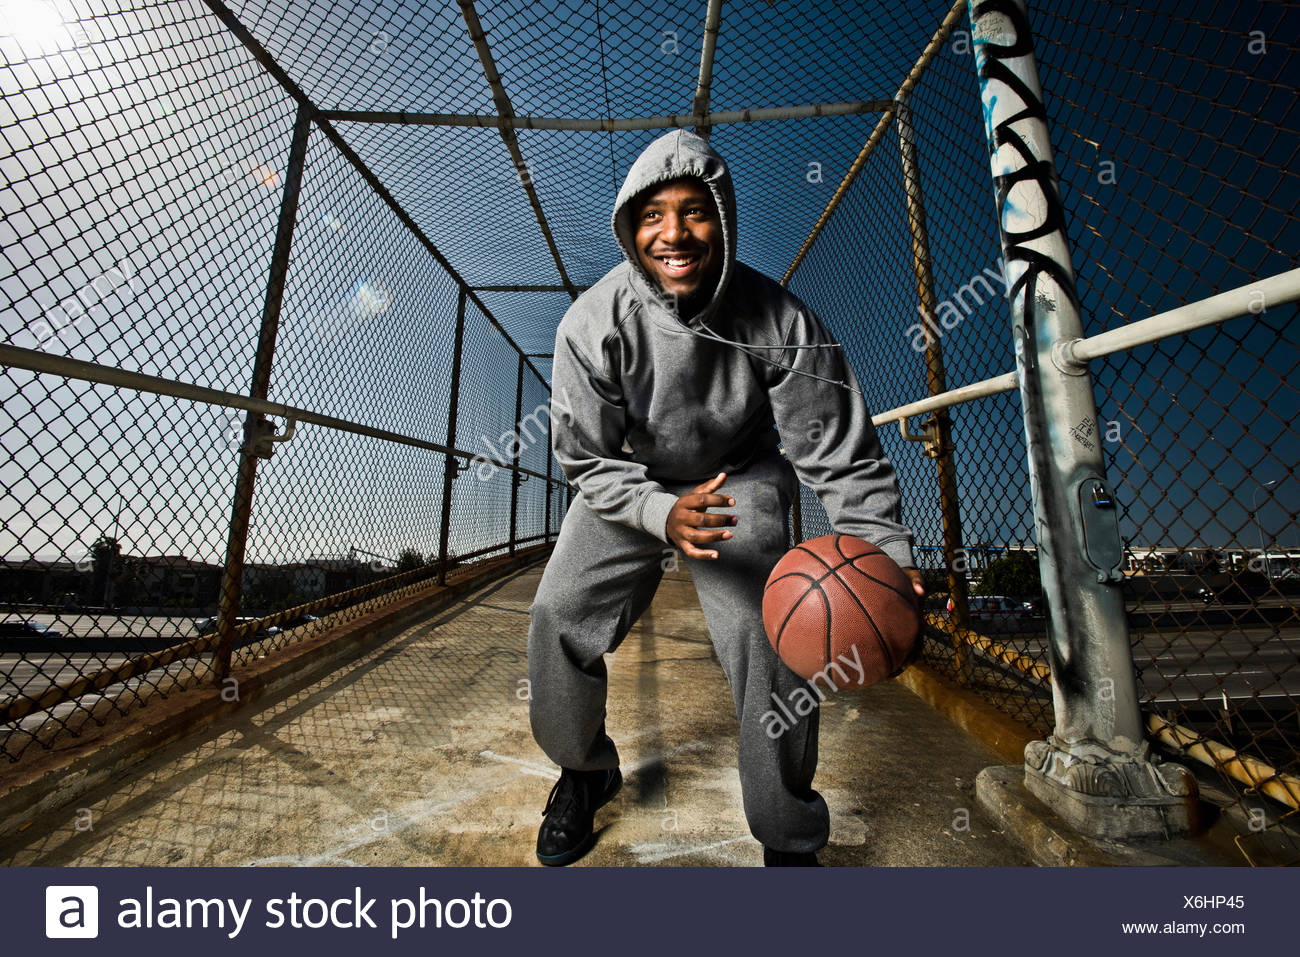 A young man playing around with a basketball. - Stock Image